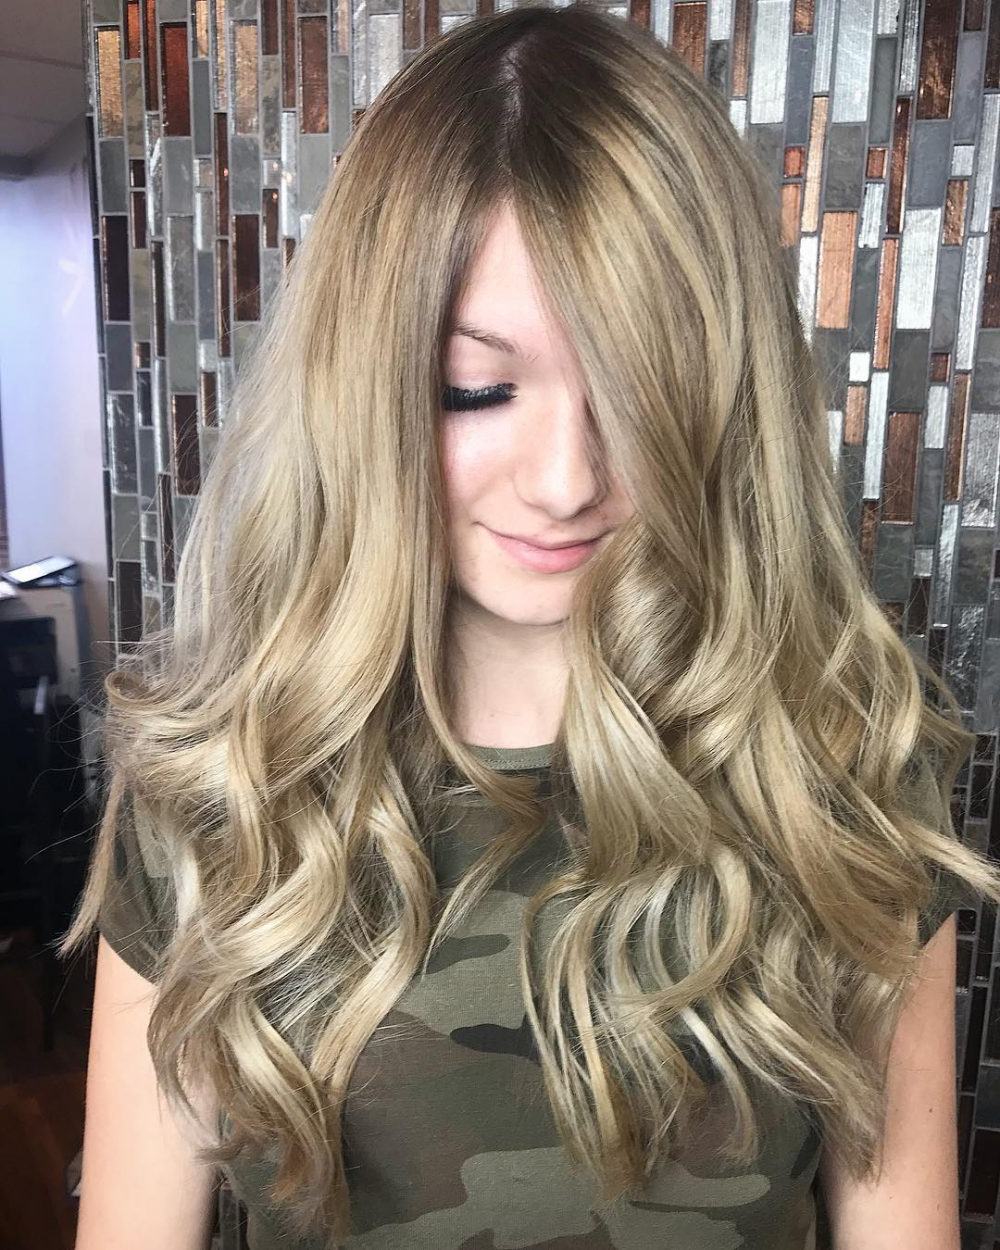 Best And Newest Messy Loose Curls Long Hairstyles With Voluminous Bangs With Regard To 24 Long Wavy Hair Ideas That Are Freaking Hot In (View 8 of 20)